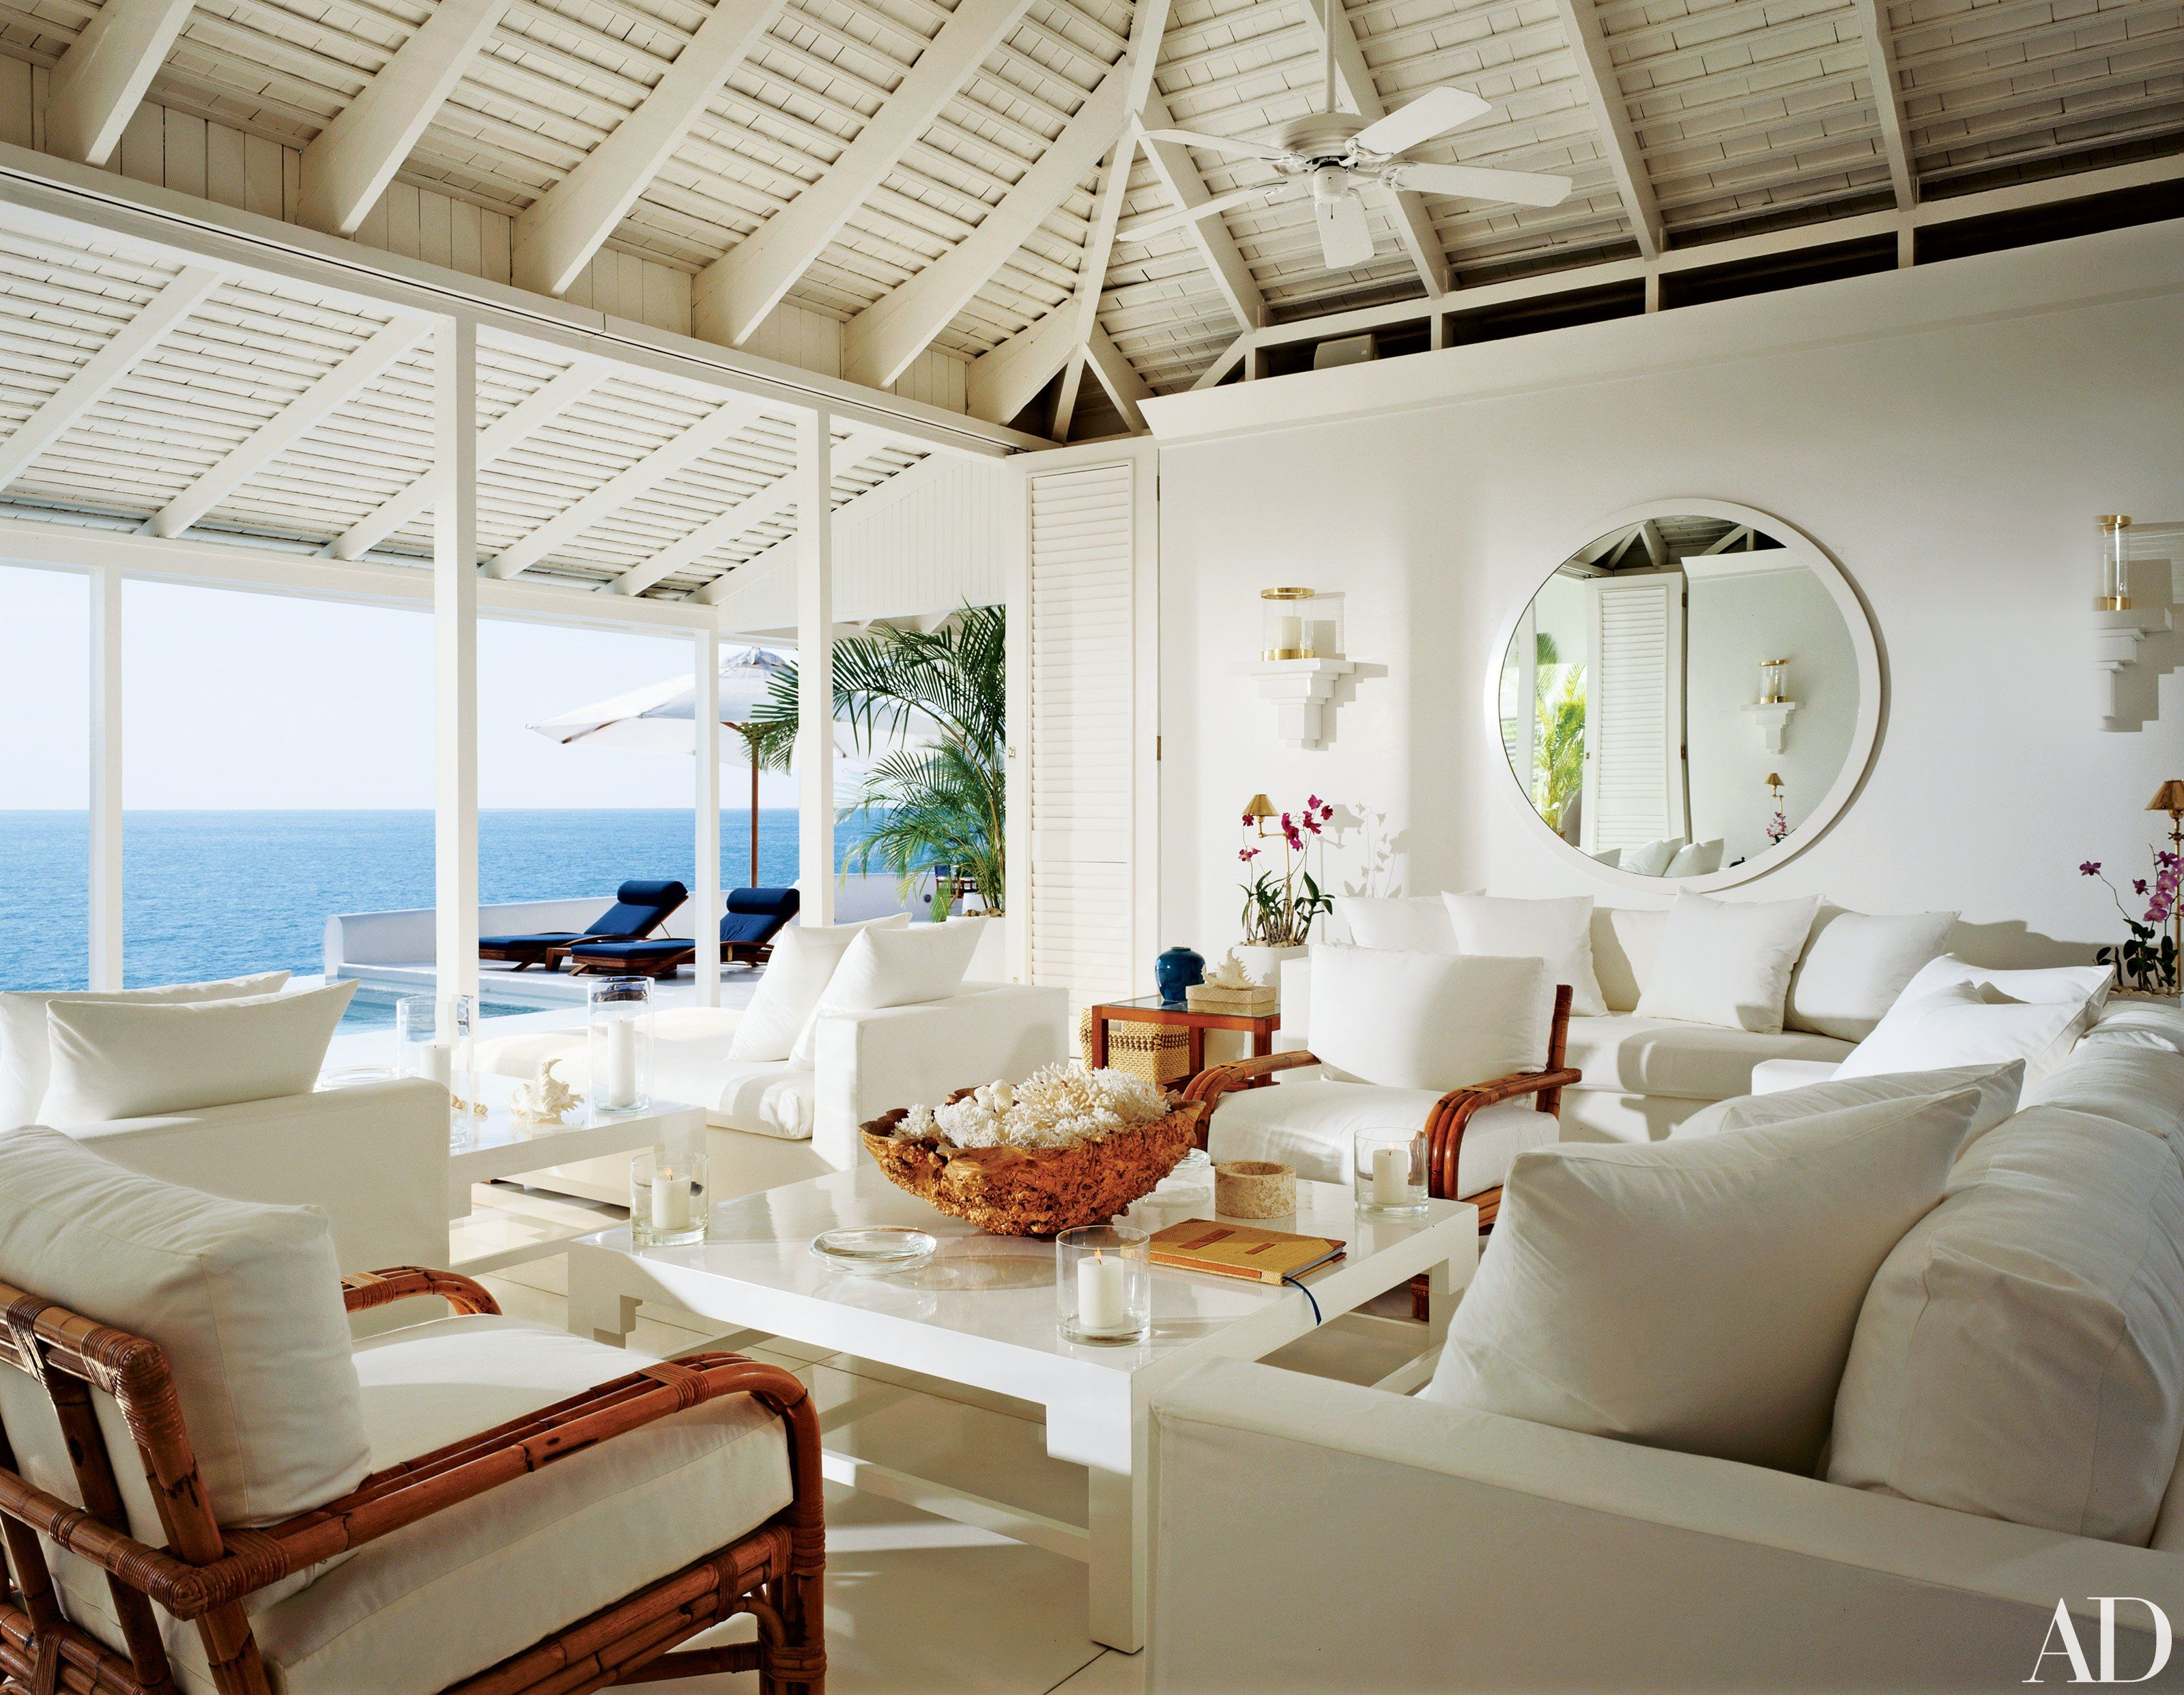 Beach Living Room Design Beauteous Take A Look Inside Ralph Lauren's Twohouse Retreat In Jamaica Design Inspiration